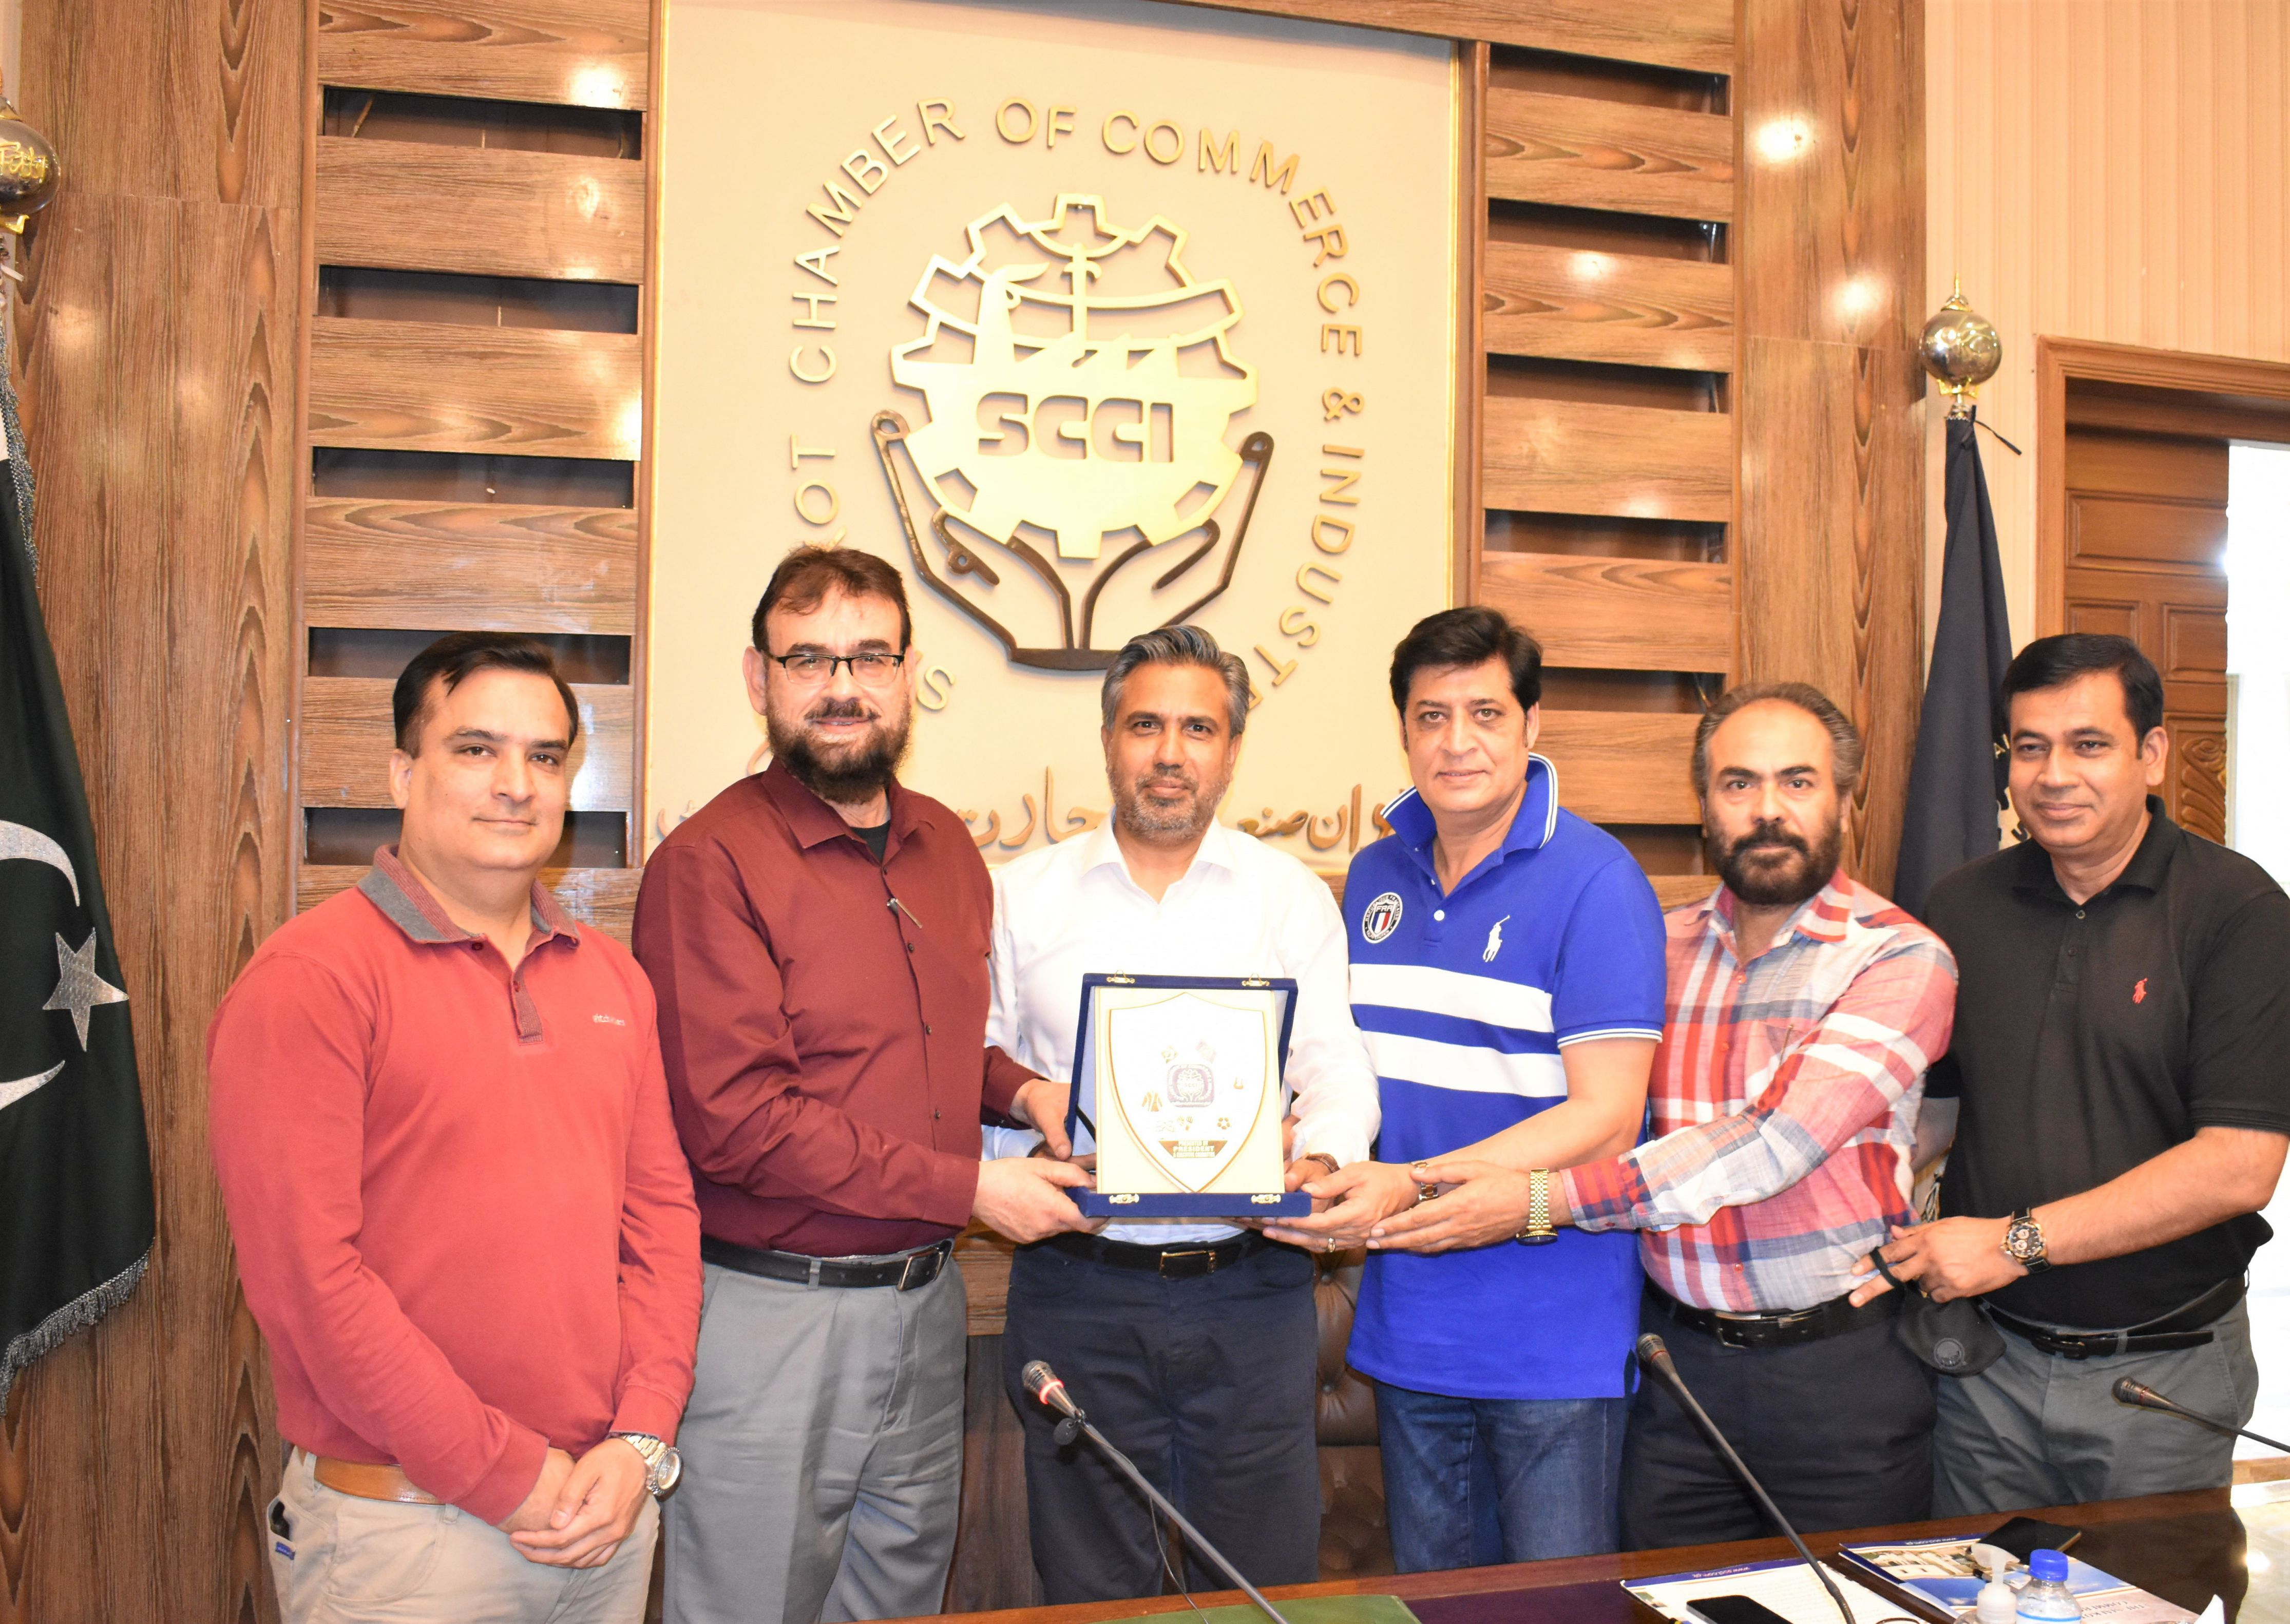 On June 5, 2021, Dr. Abdul Bari Khan, CEO, Indus Hospital and Health Network visited Sialkot Chamber of Commerce and Industry. President Chamber Mr. Qaisar Iqbal Baryar mentioned that a quality Hospital of the stature of Indus Hospital Karachi ought to be established in Sialkot to provide free of cost cutting edge healthcare to the marginalized segment of society.  On this occasion Mr. Qaisar Iqbal Baryar announced 10 acres land as a donation for establishment of aforementioned hospital. Dr. Abdul Bari Khan appreciated the vision of Sialkot Chamber and its members for taking and endorsed the generous donation of Mr. Qaisar Iqbal Baryar and said that a master plan would be formulated considering the phase wise execution of the project.